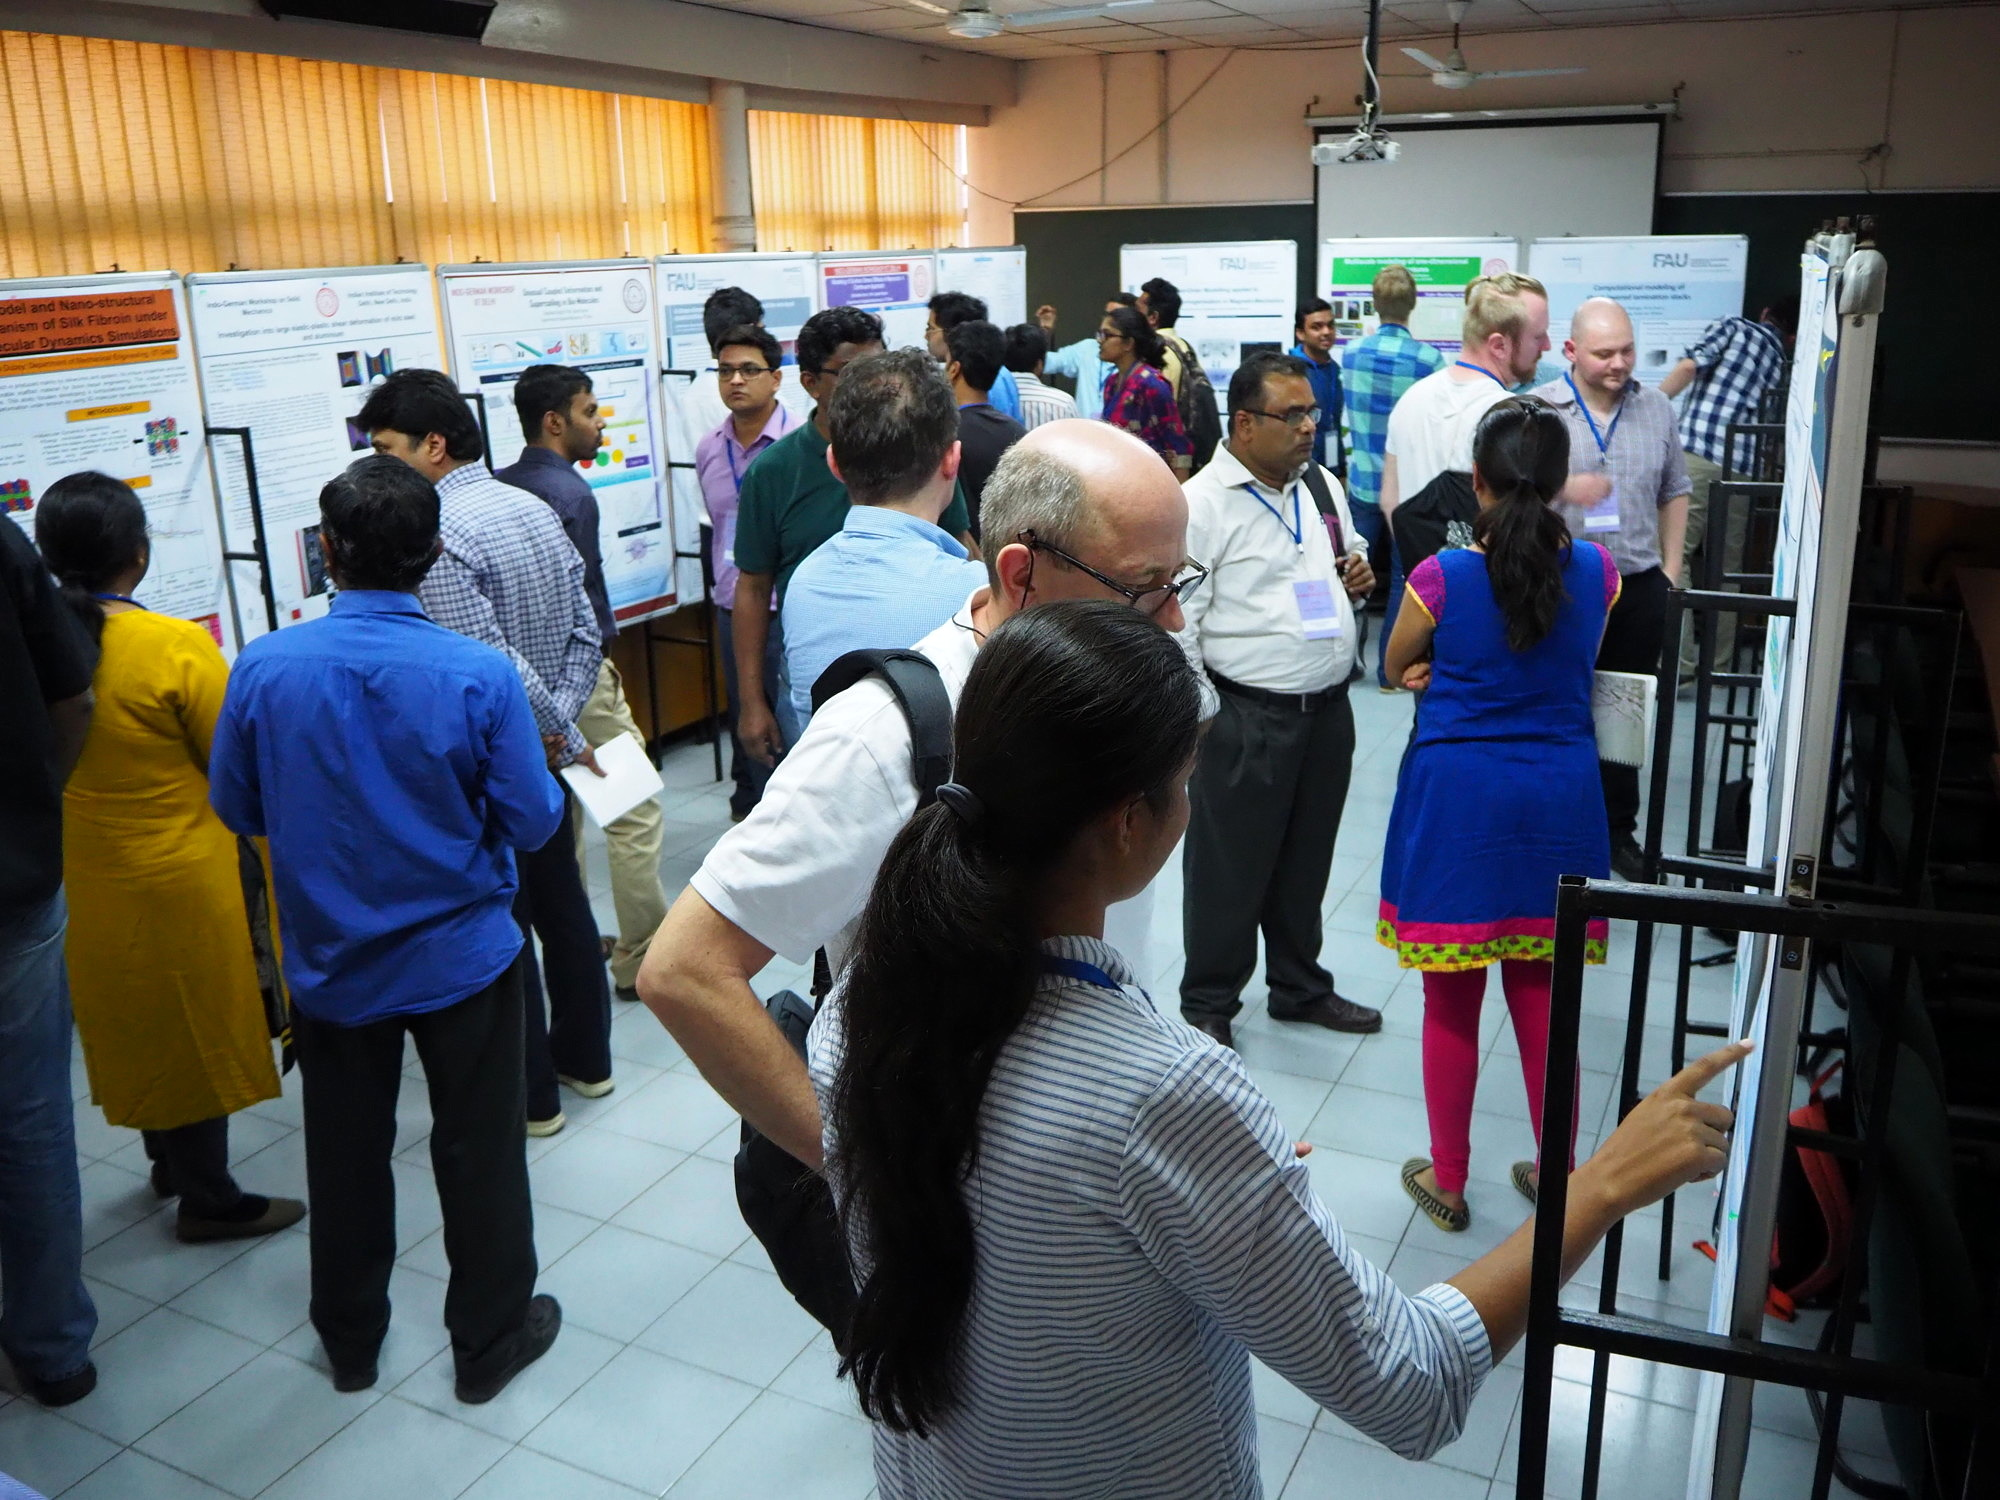 More than 20 people gathering to look at the posters that were part of the workshop at the Indian Institute of Technology Delhi.